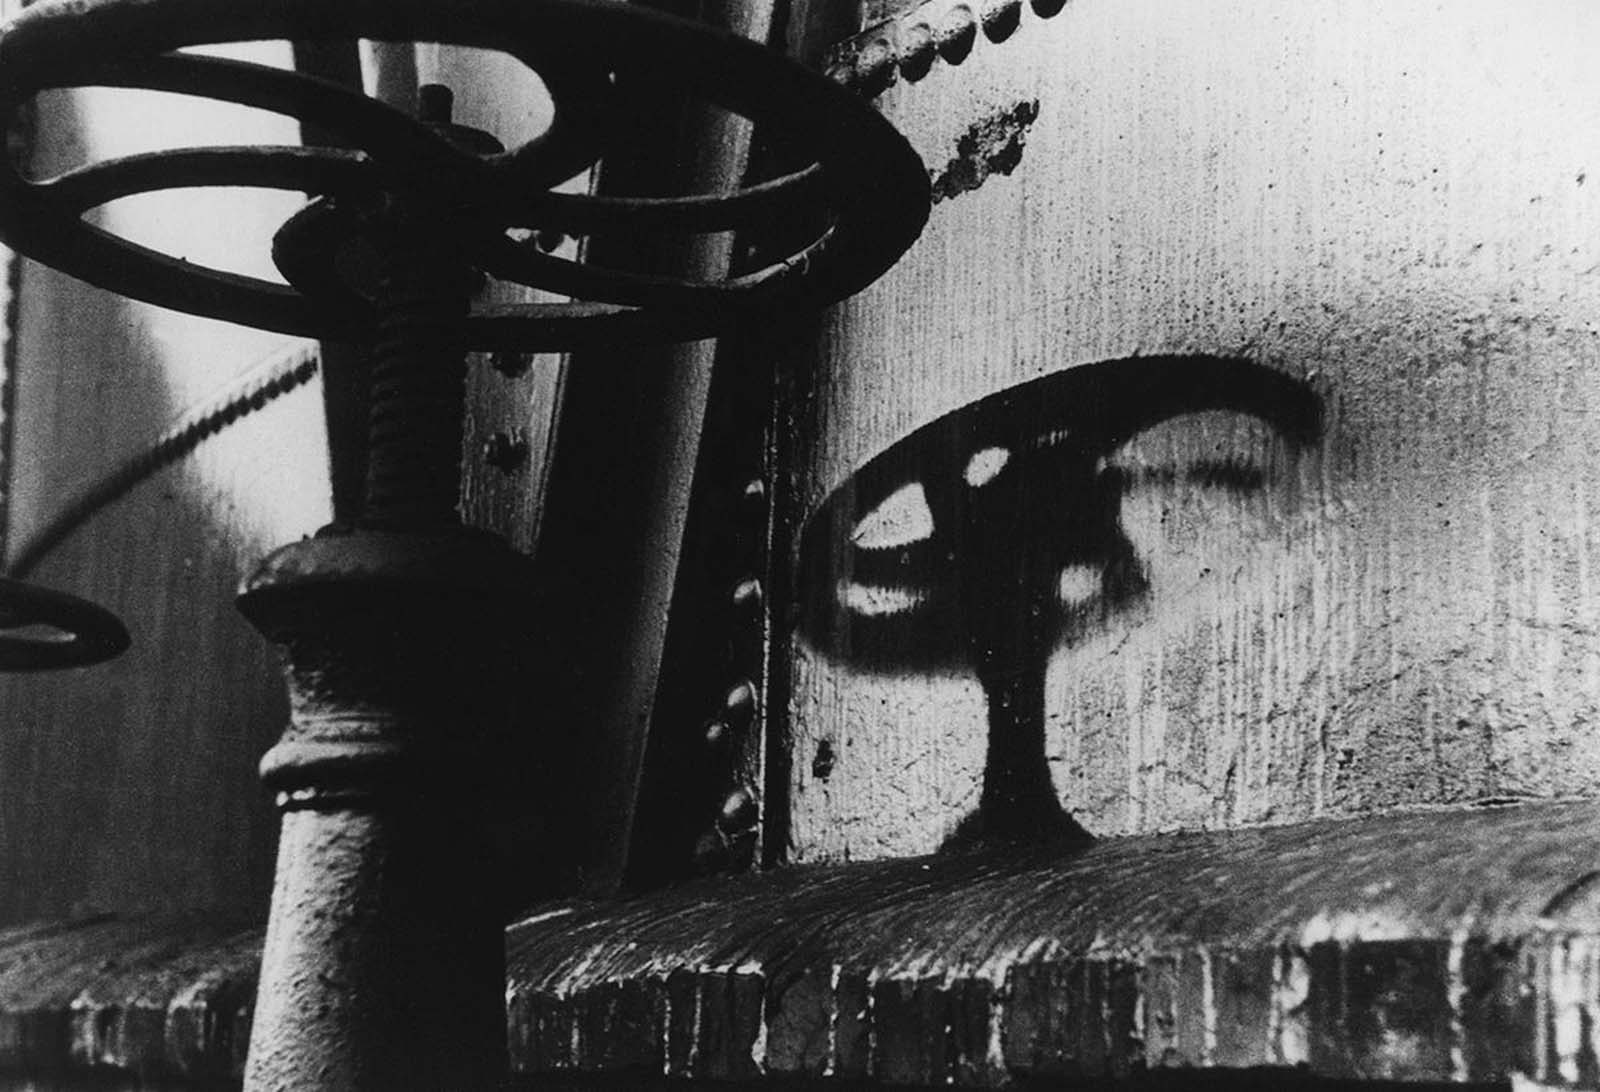 The shadow of a handle on a gasometer left an imprint after the August 6, 1945 atomic bomb explosion, two kilometers away from the hypocenter in Hiroshima.